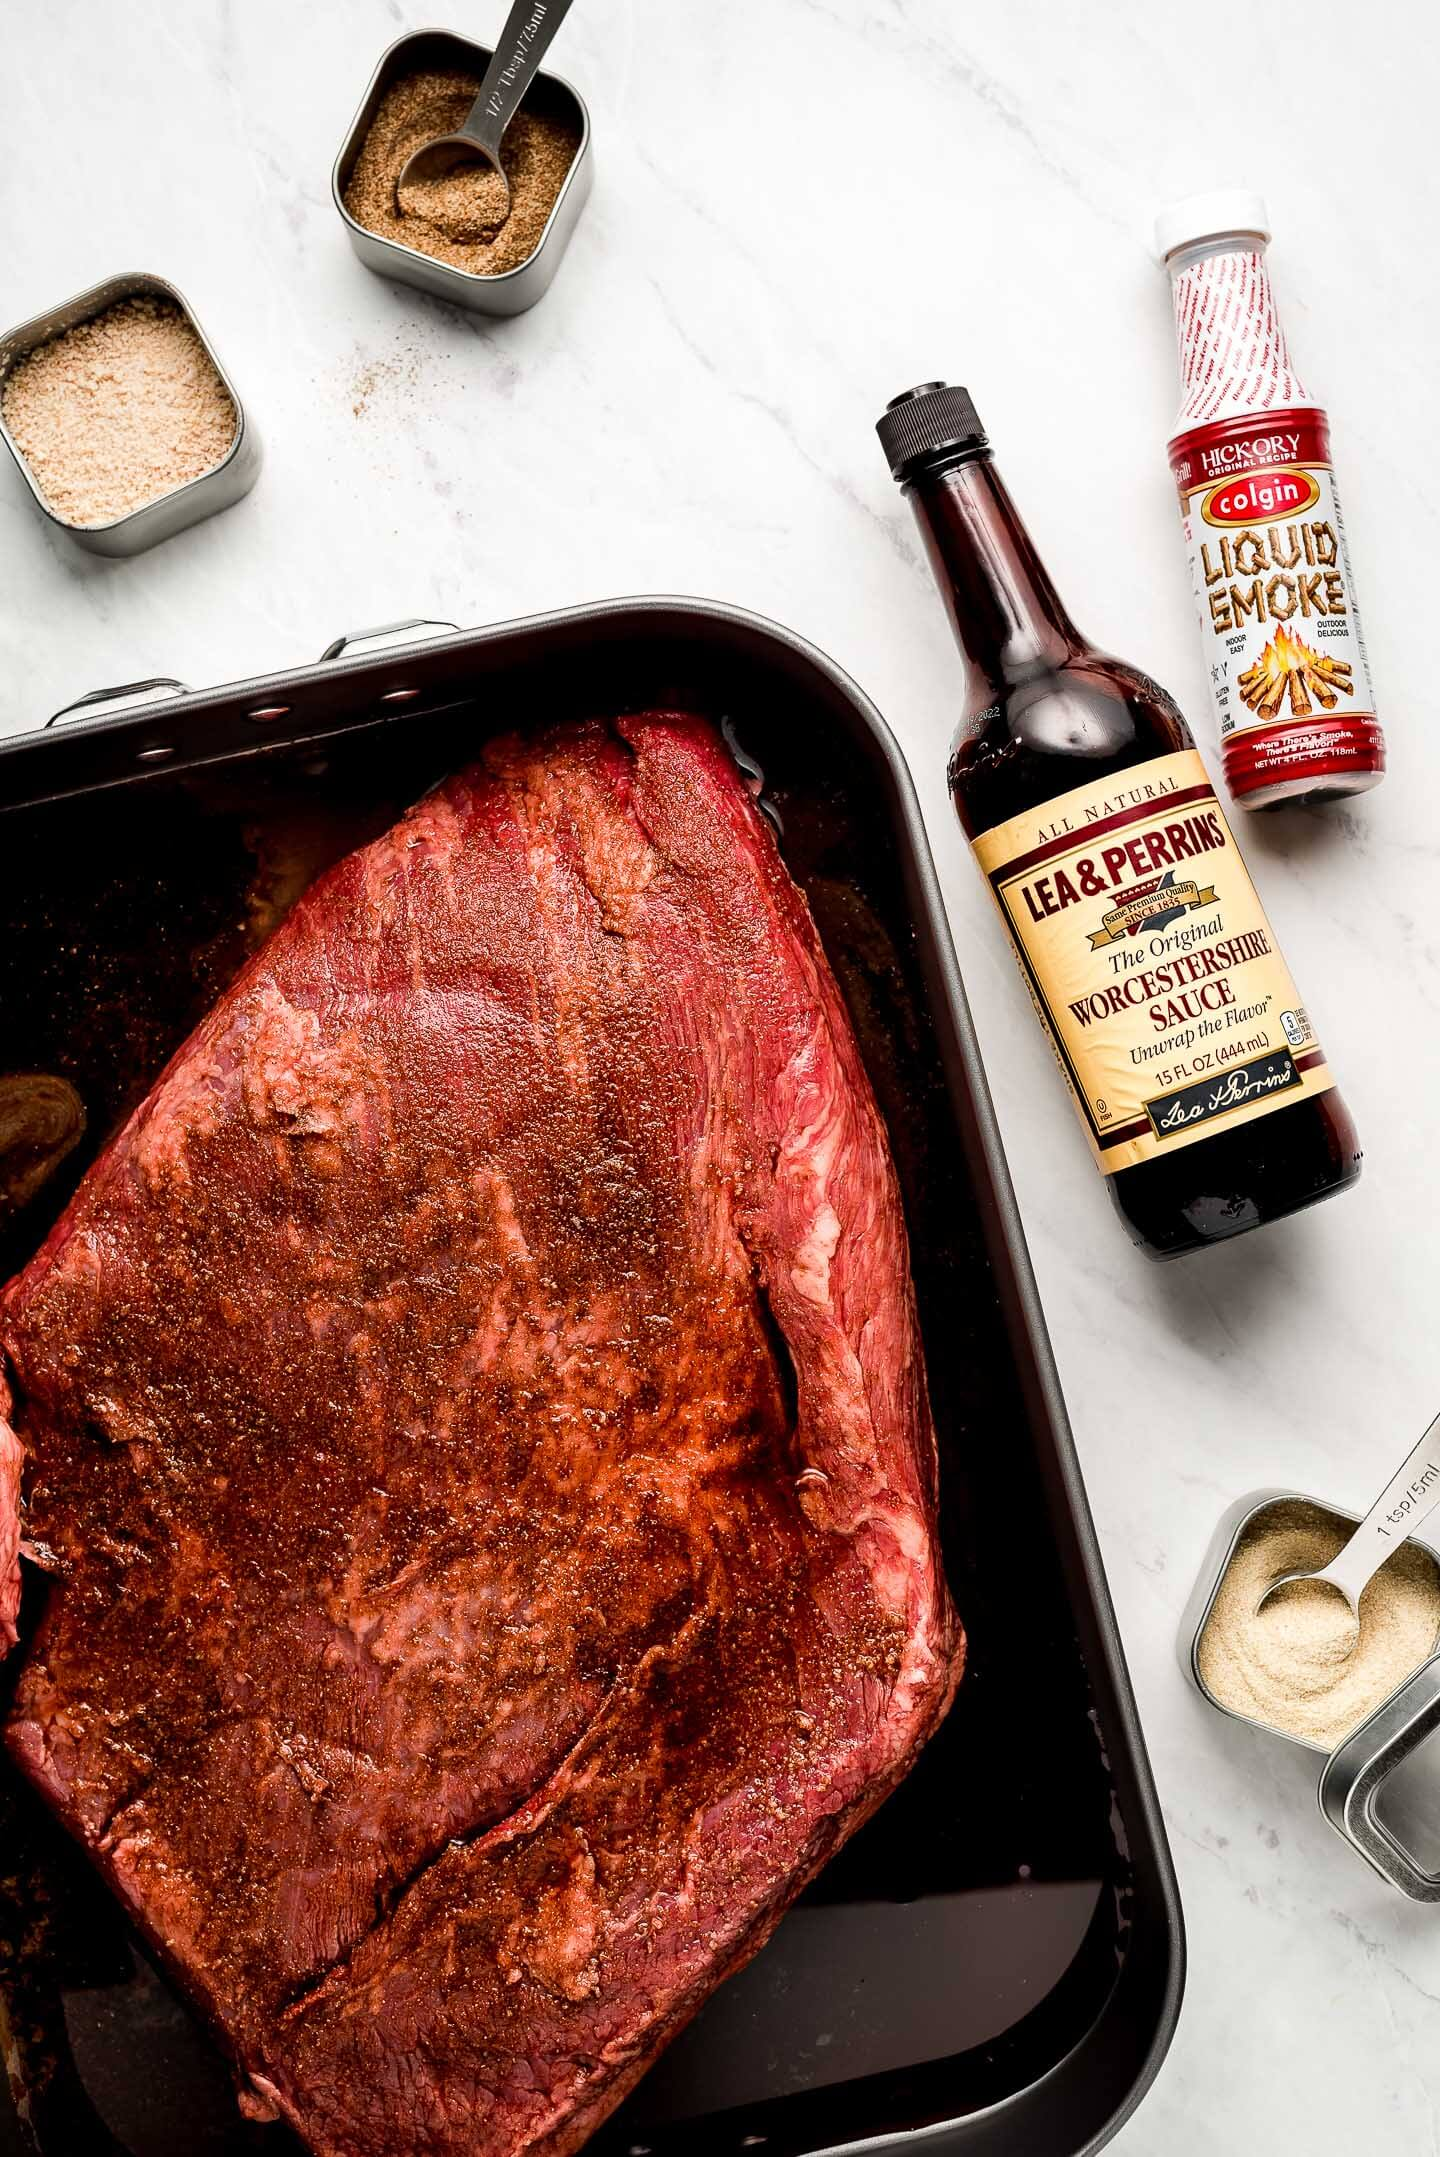 Ingredients on a marble surface- brisket, spices, Worcestershire sauce, and liquid smoke.